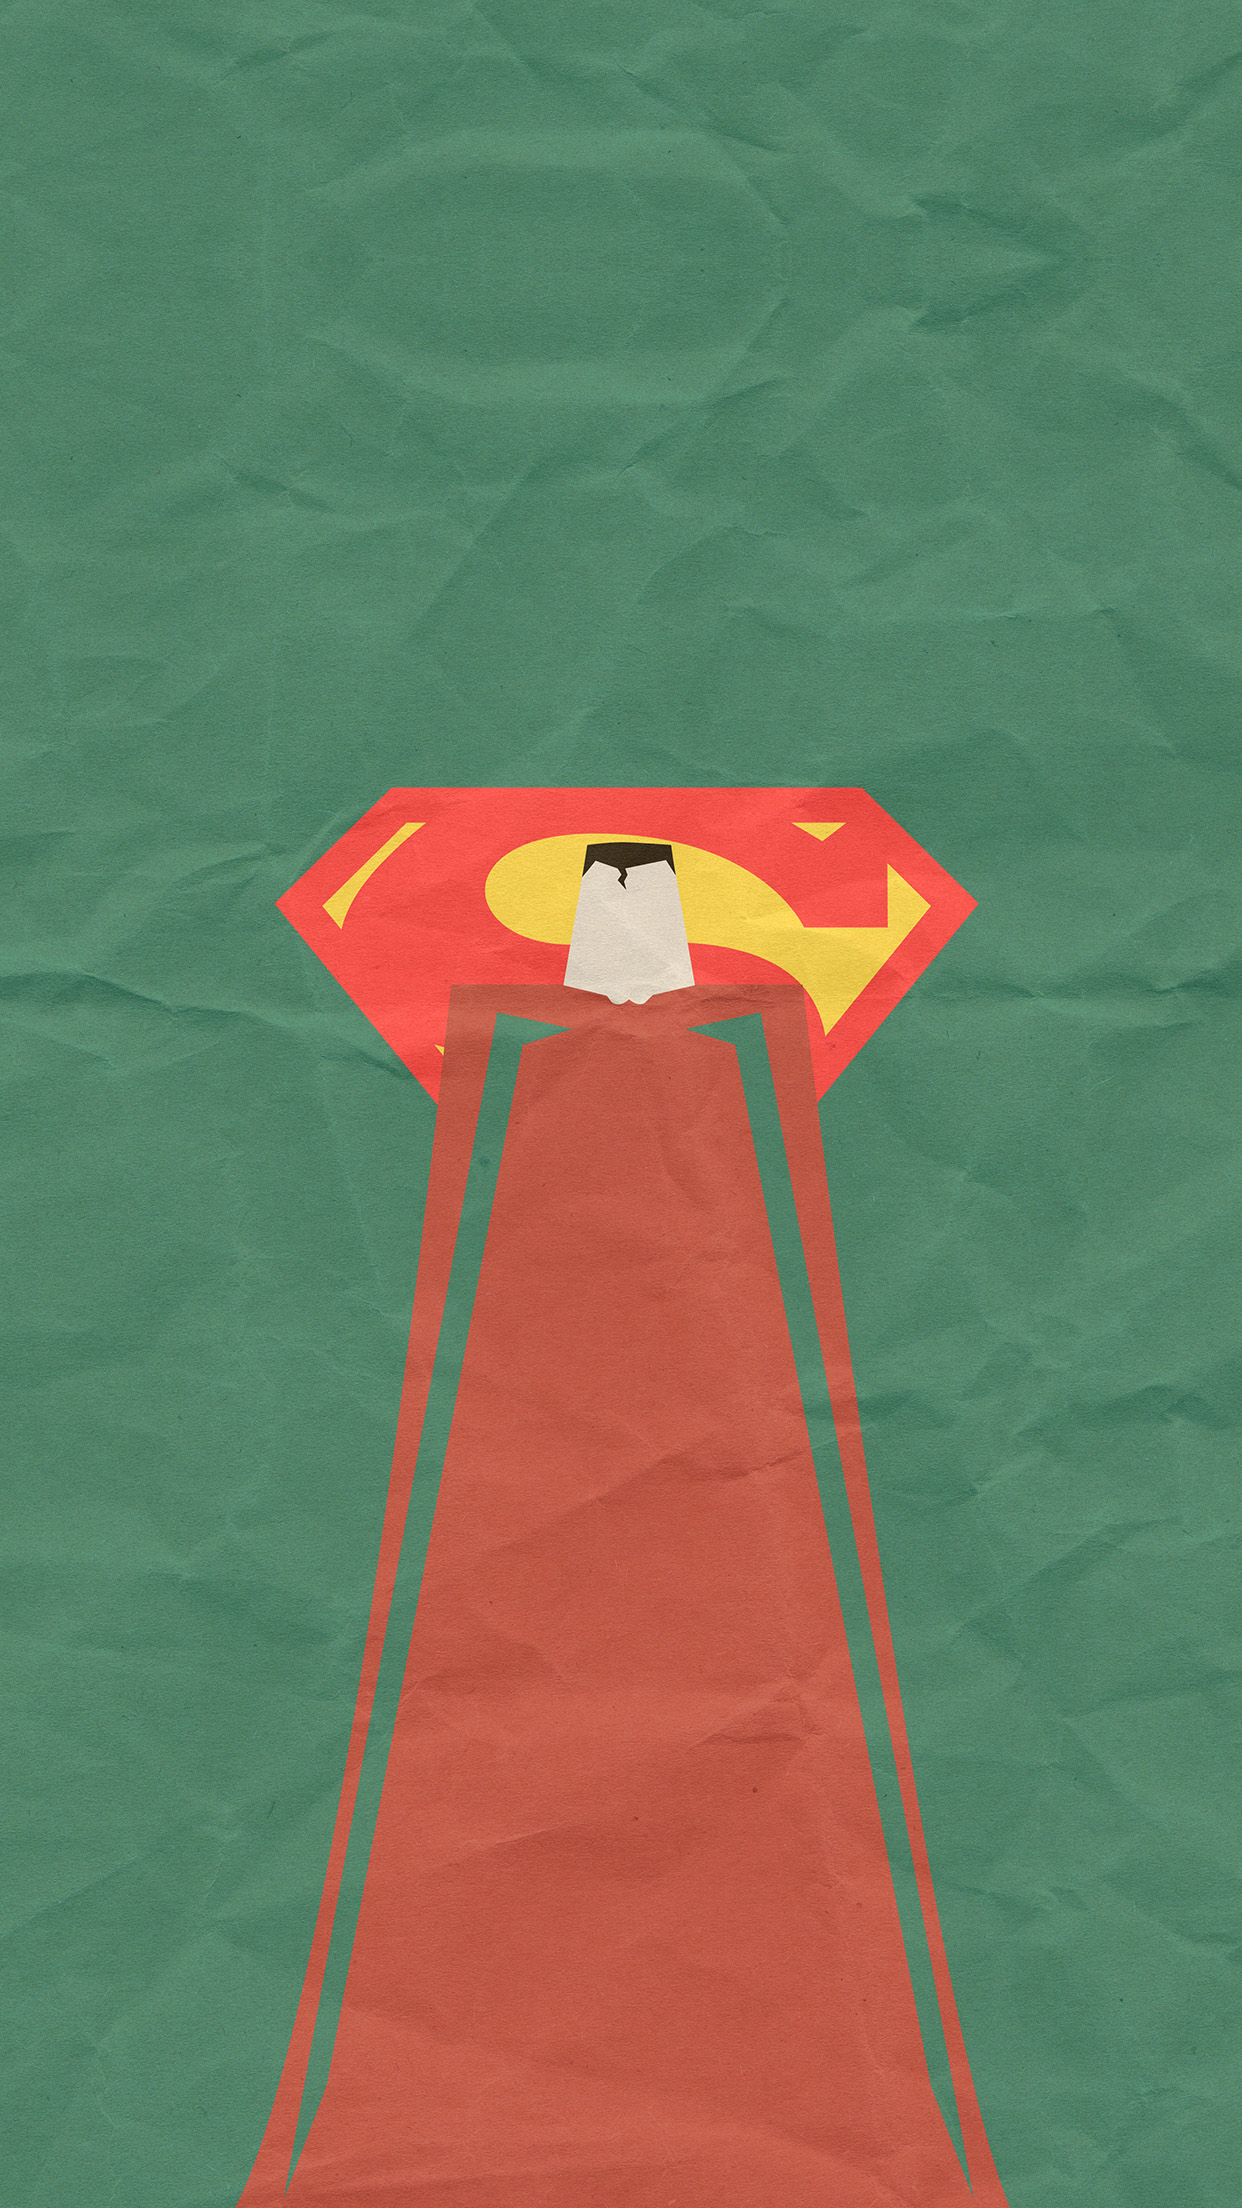 Winter Wallpaper Iphone 7 Papers Co Iphone Wallpaper Au67 Superman Minimal Art